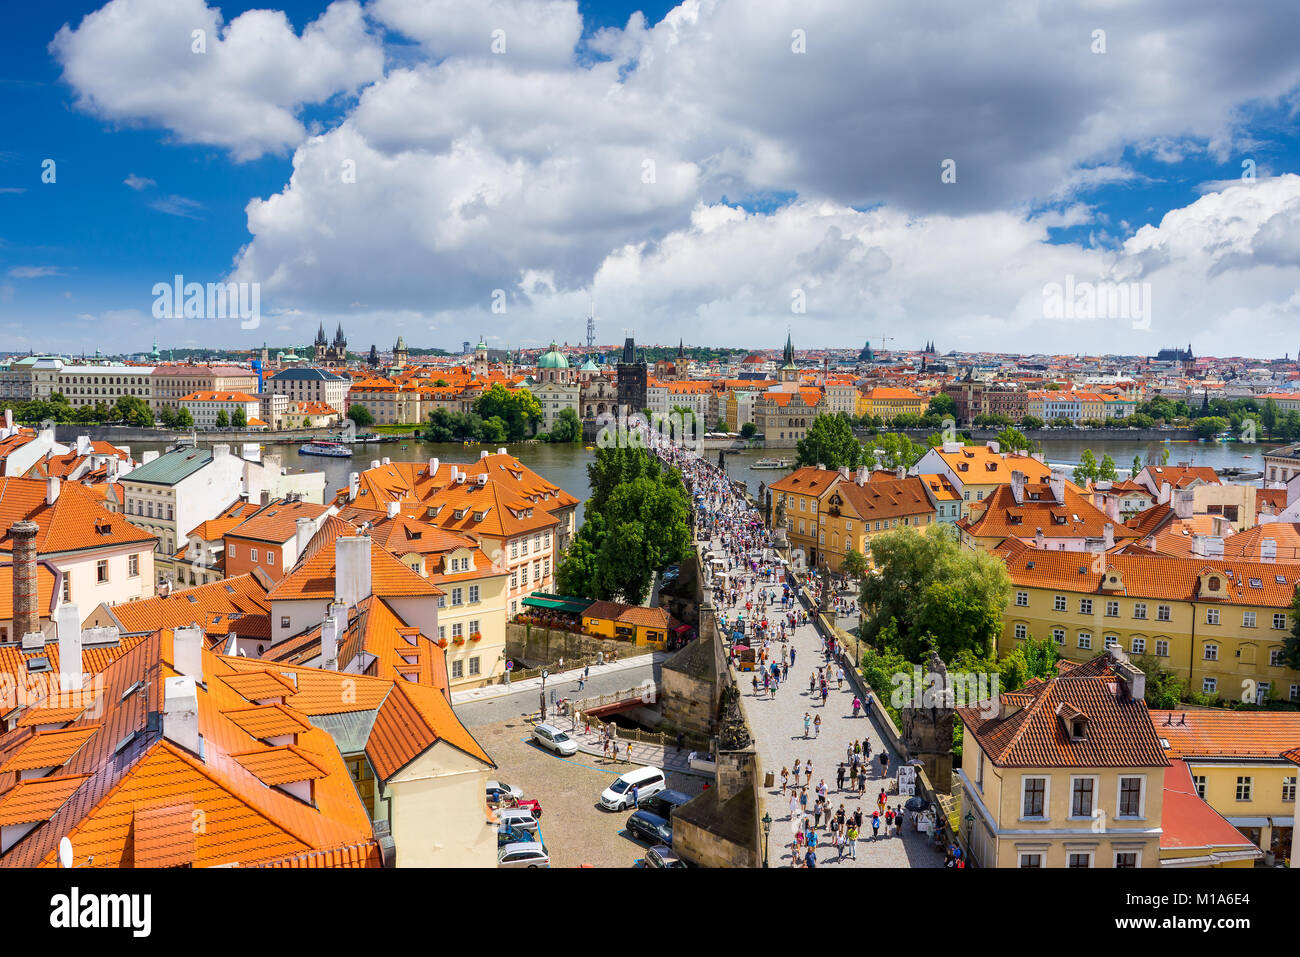 Aerial shot of Charles Bridge (Karluv Most), and the River Vltava, Czech Republic - Stock Image